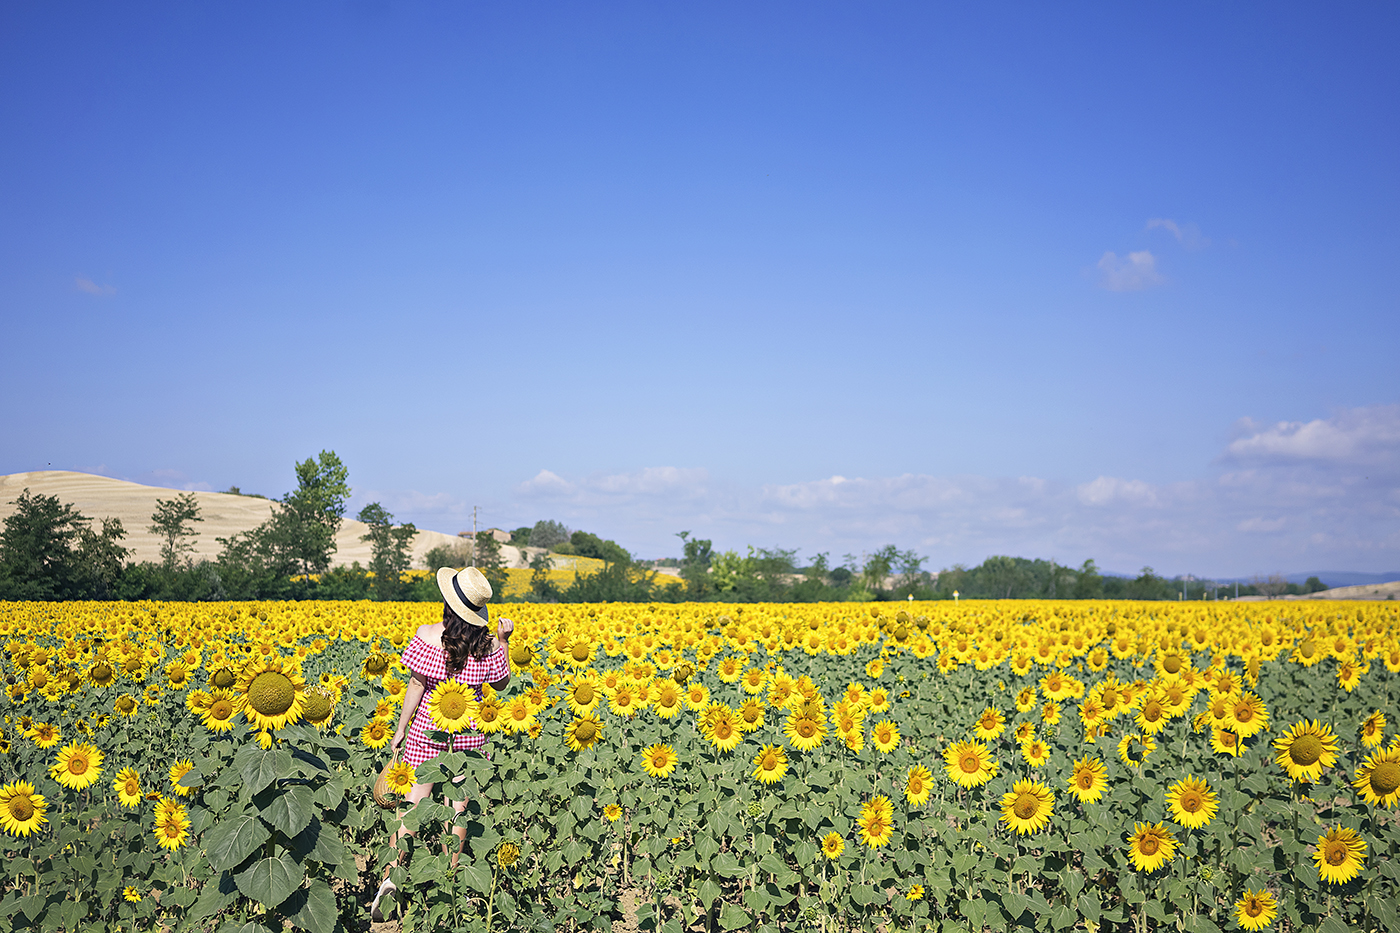 Chasing Sunflowers in Tuscany